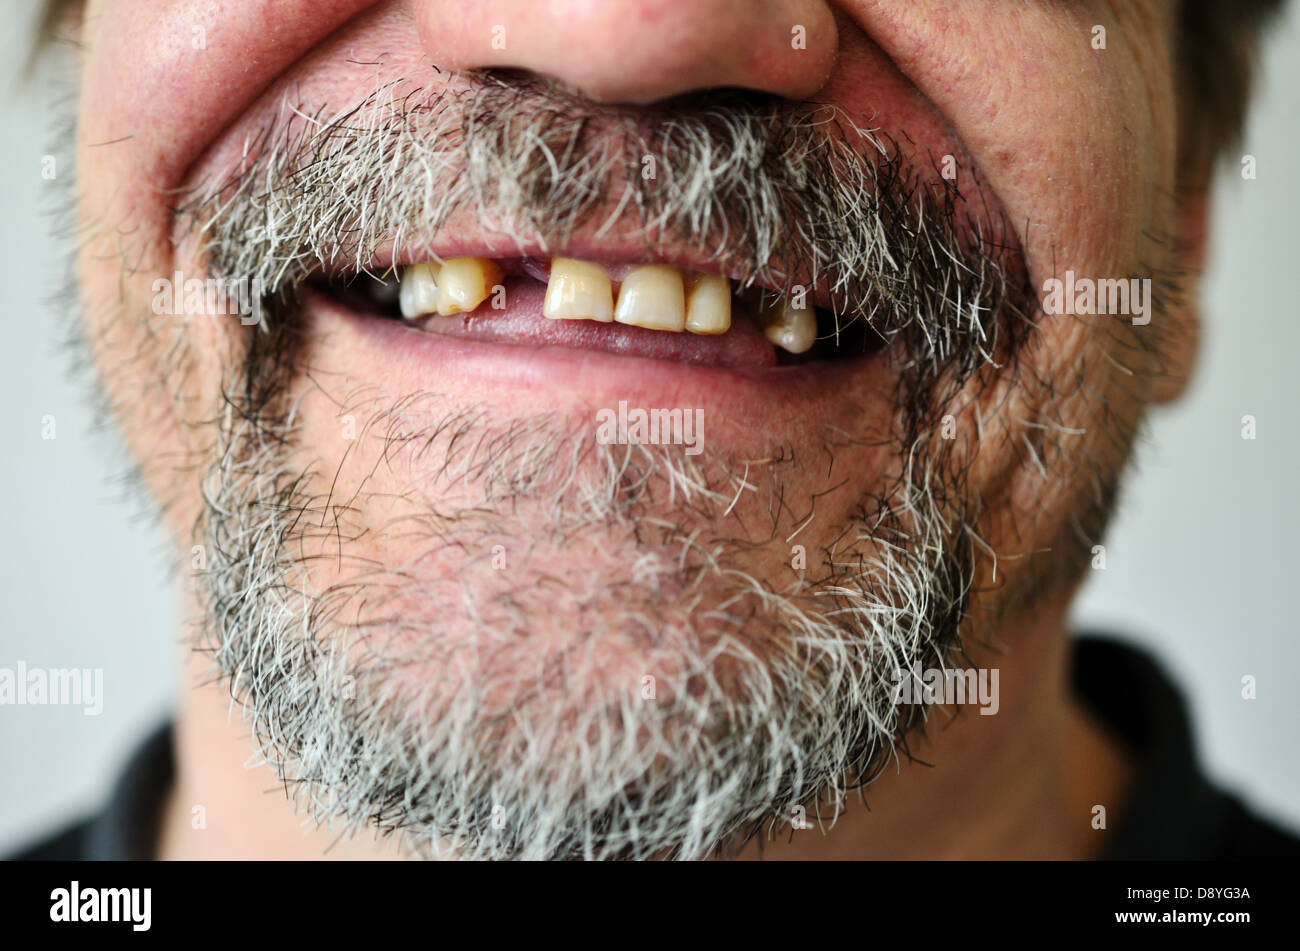 part of a man's face with a smiling toothless - Stock Image